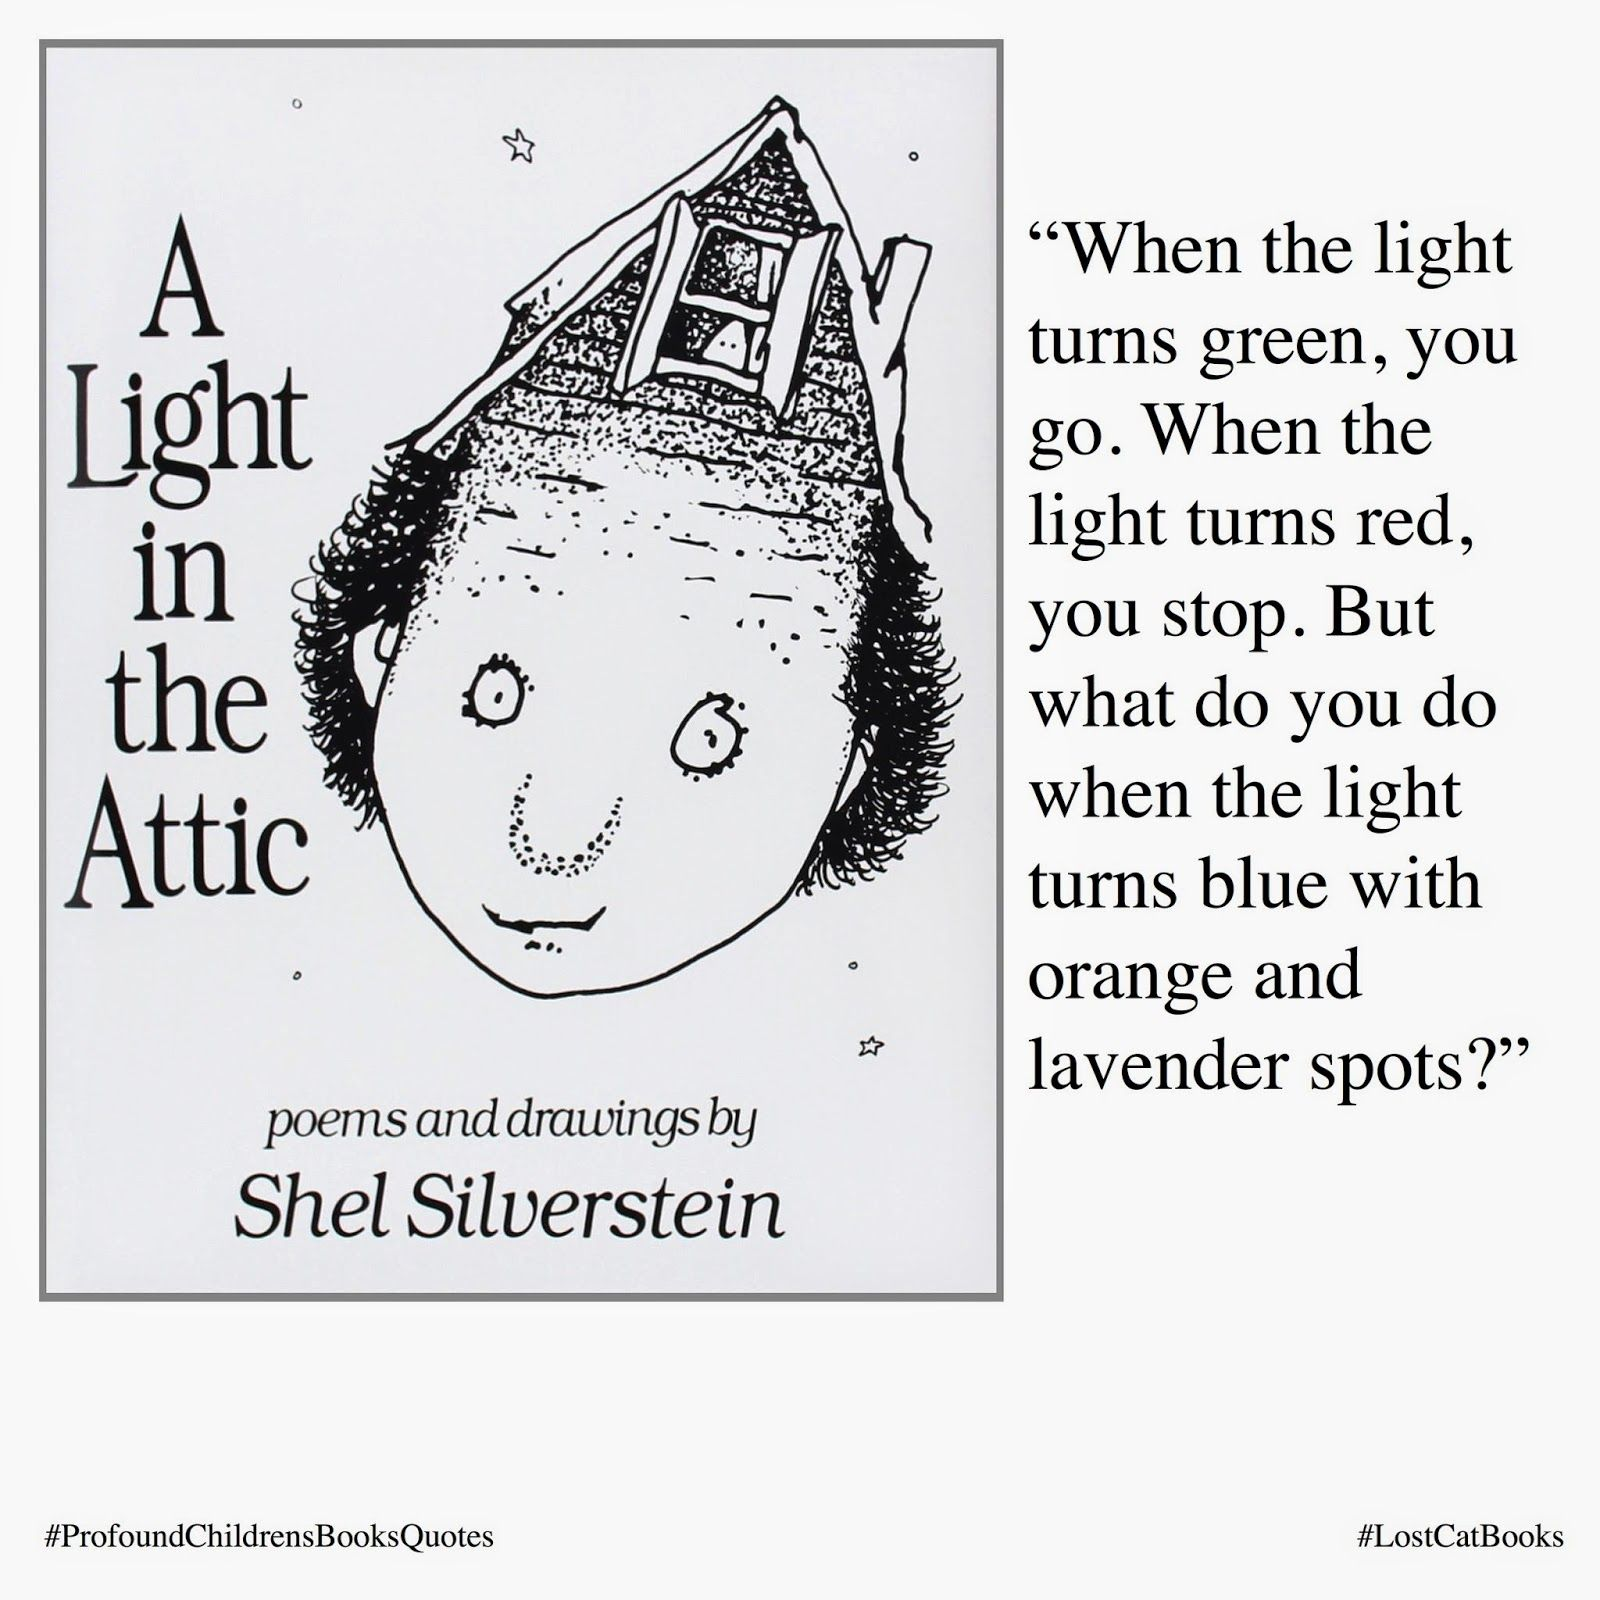 Profound Quotes From Children S Books A Light In The Attic Lost Cat Books Parademagazine Pr Quotes From Childrens Books Children Book Quotes Profound Quotes